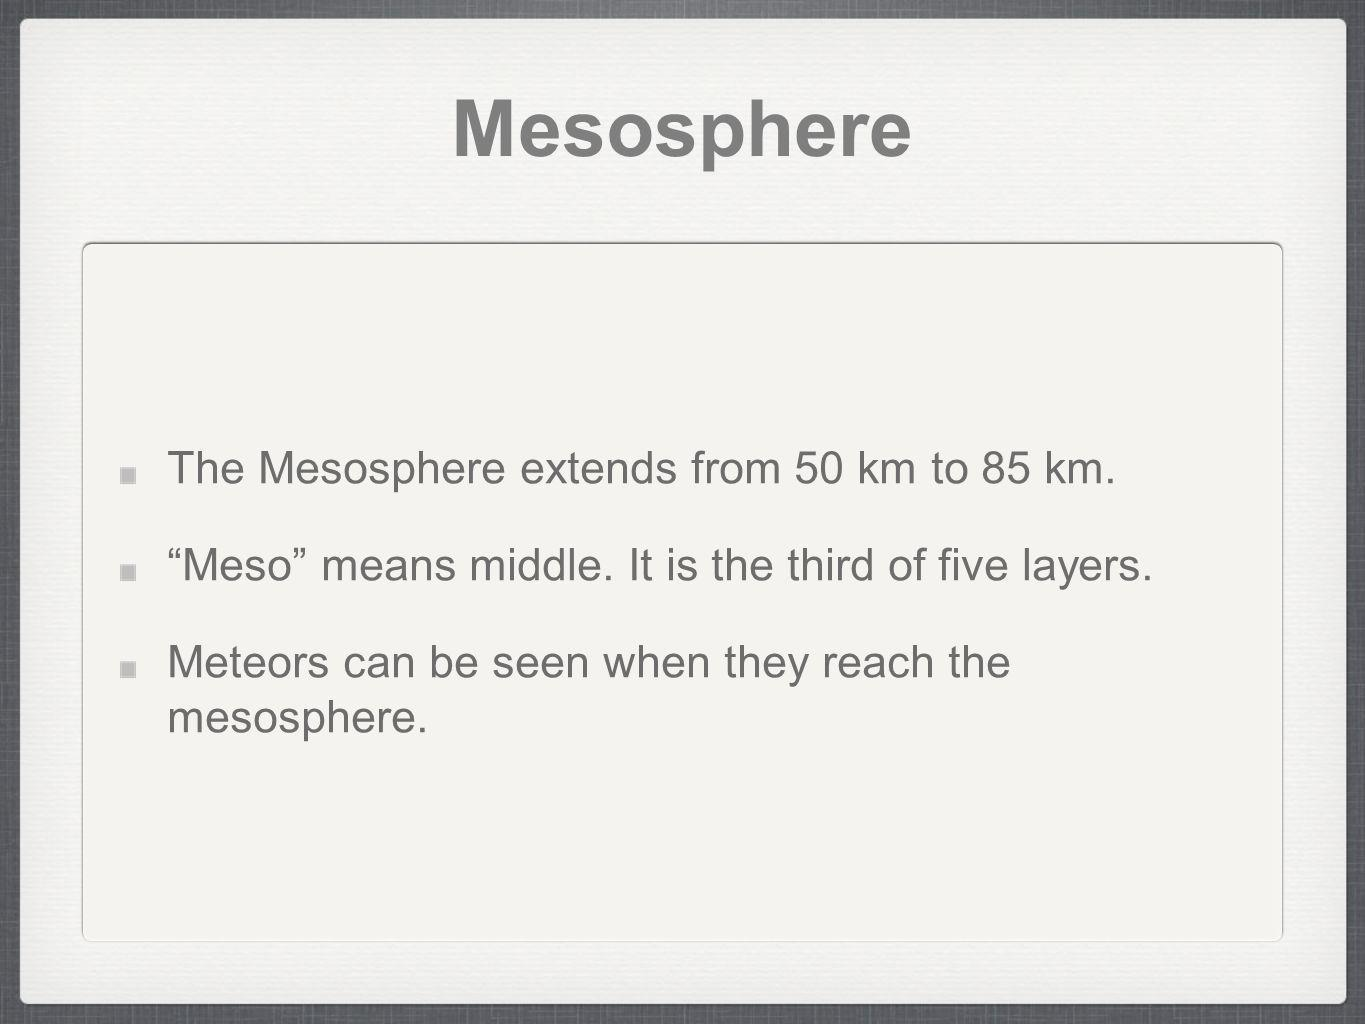 Mesosphere The Mesosphere extends from 50 km to 85 km.